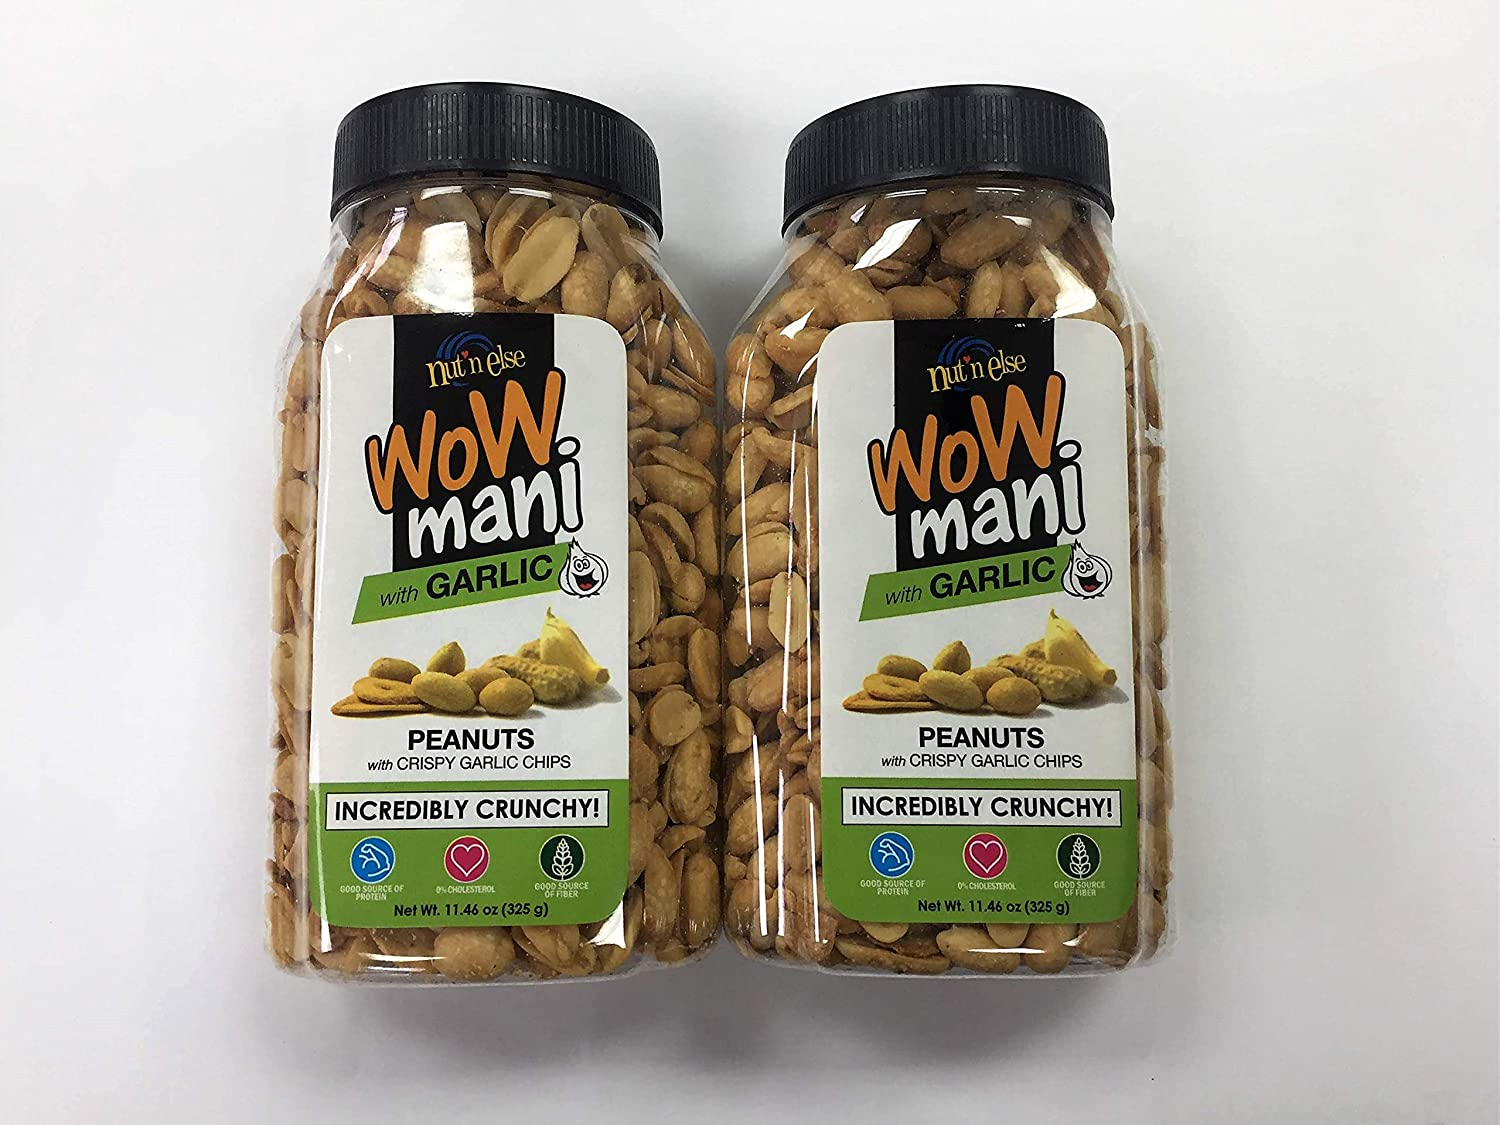 Wow Mani with Garlic Peanuts Pack of Two 11.46 Oz a Pack